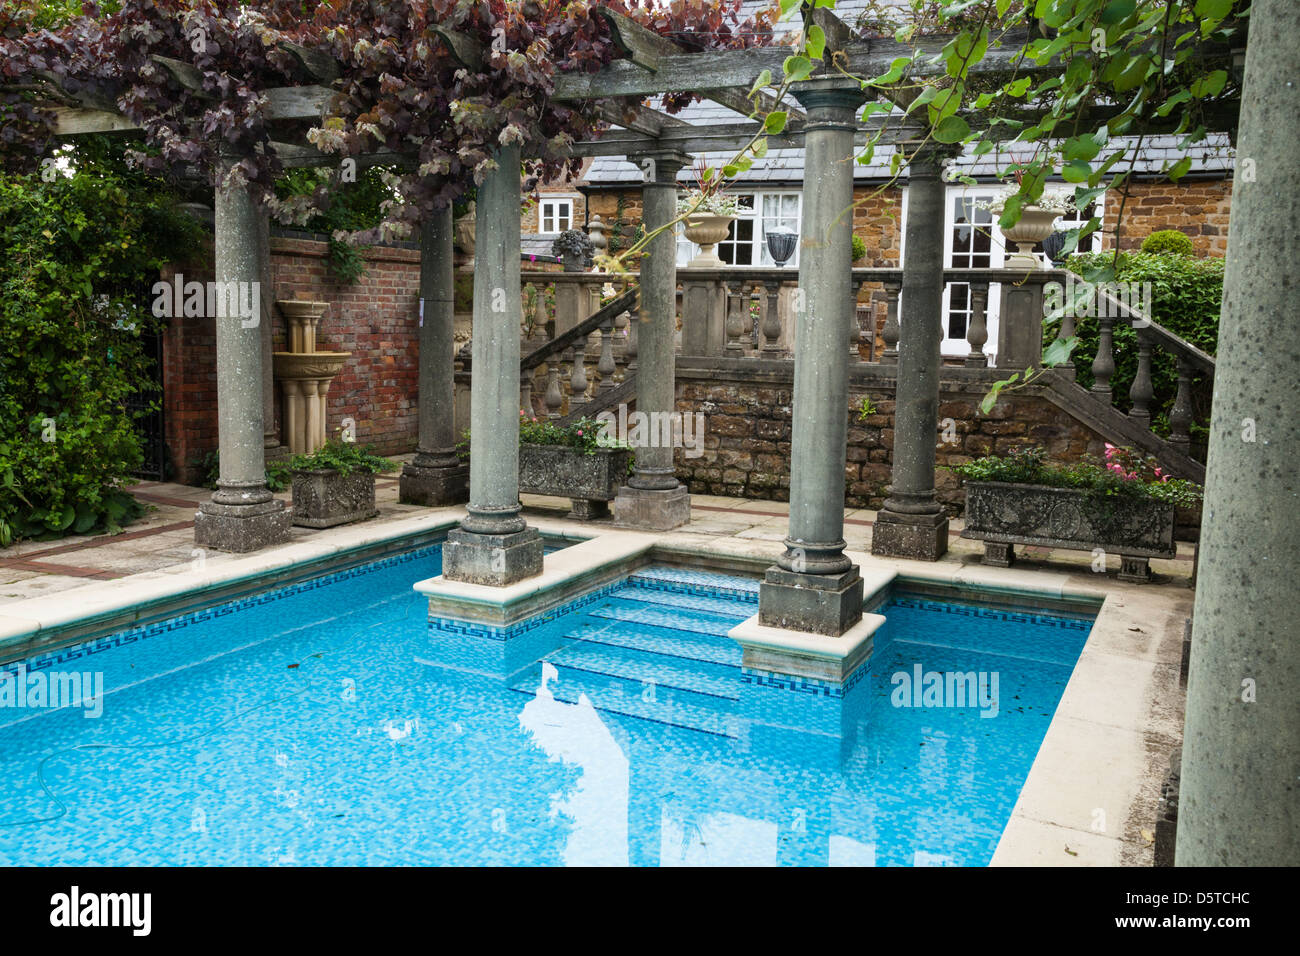 Outdoor Swimming Pool House Uk Stock Photos Outdoor Swimming Pool House Uk Stock Images Alamy